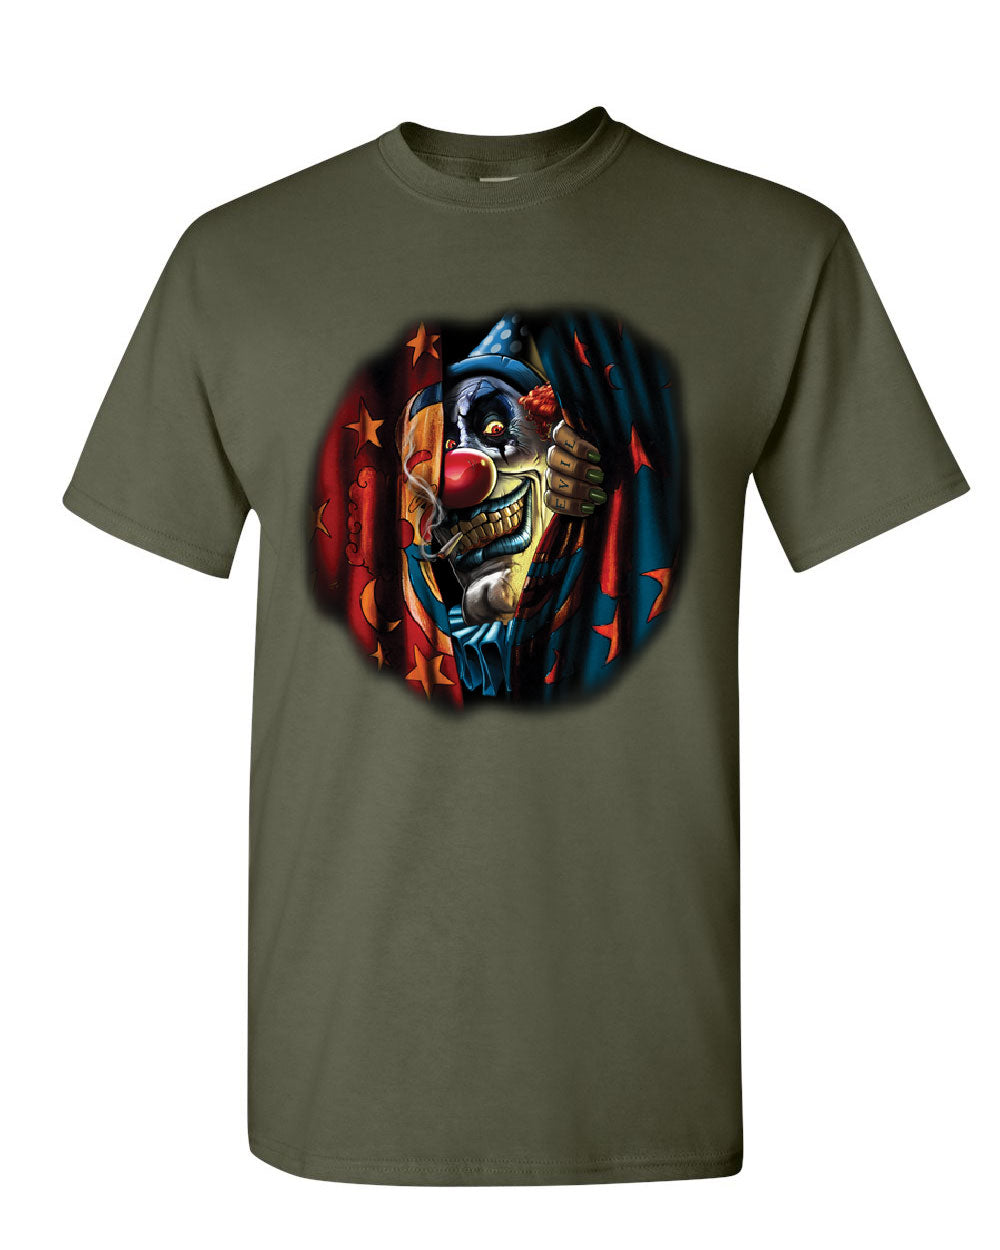 Scary Circus Clown T Shirt Insane Creepy Clown Evil Mad Horror Mens